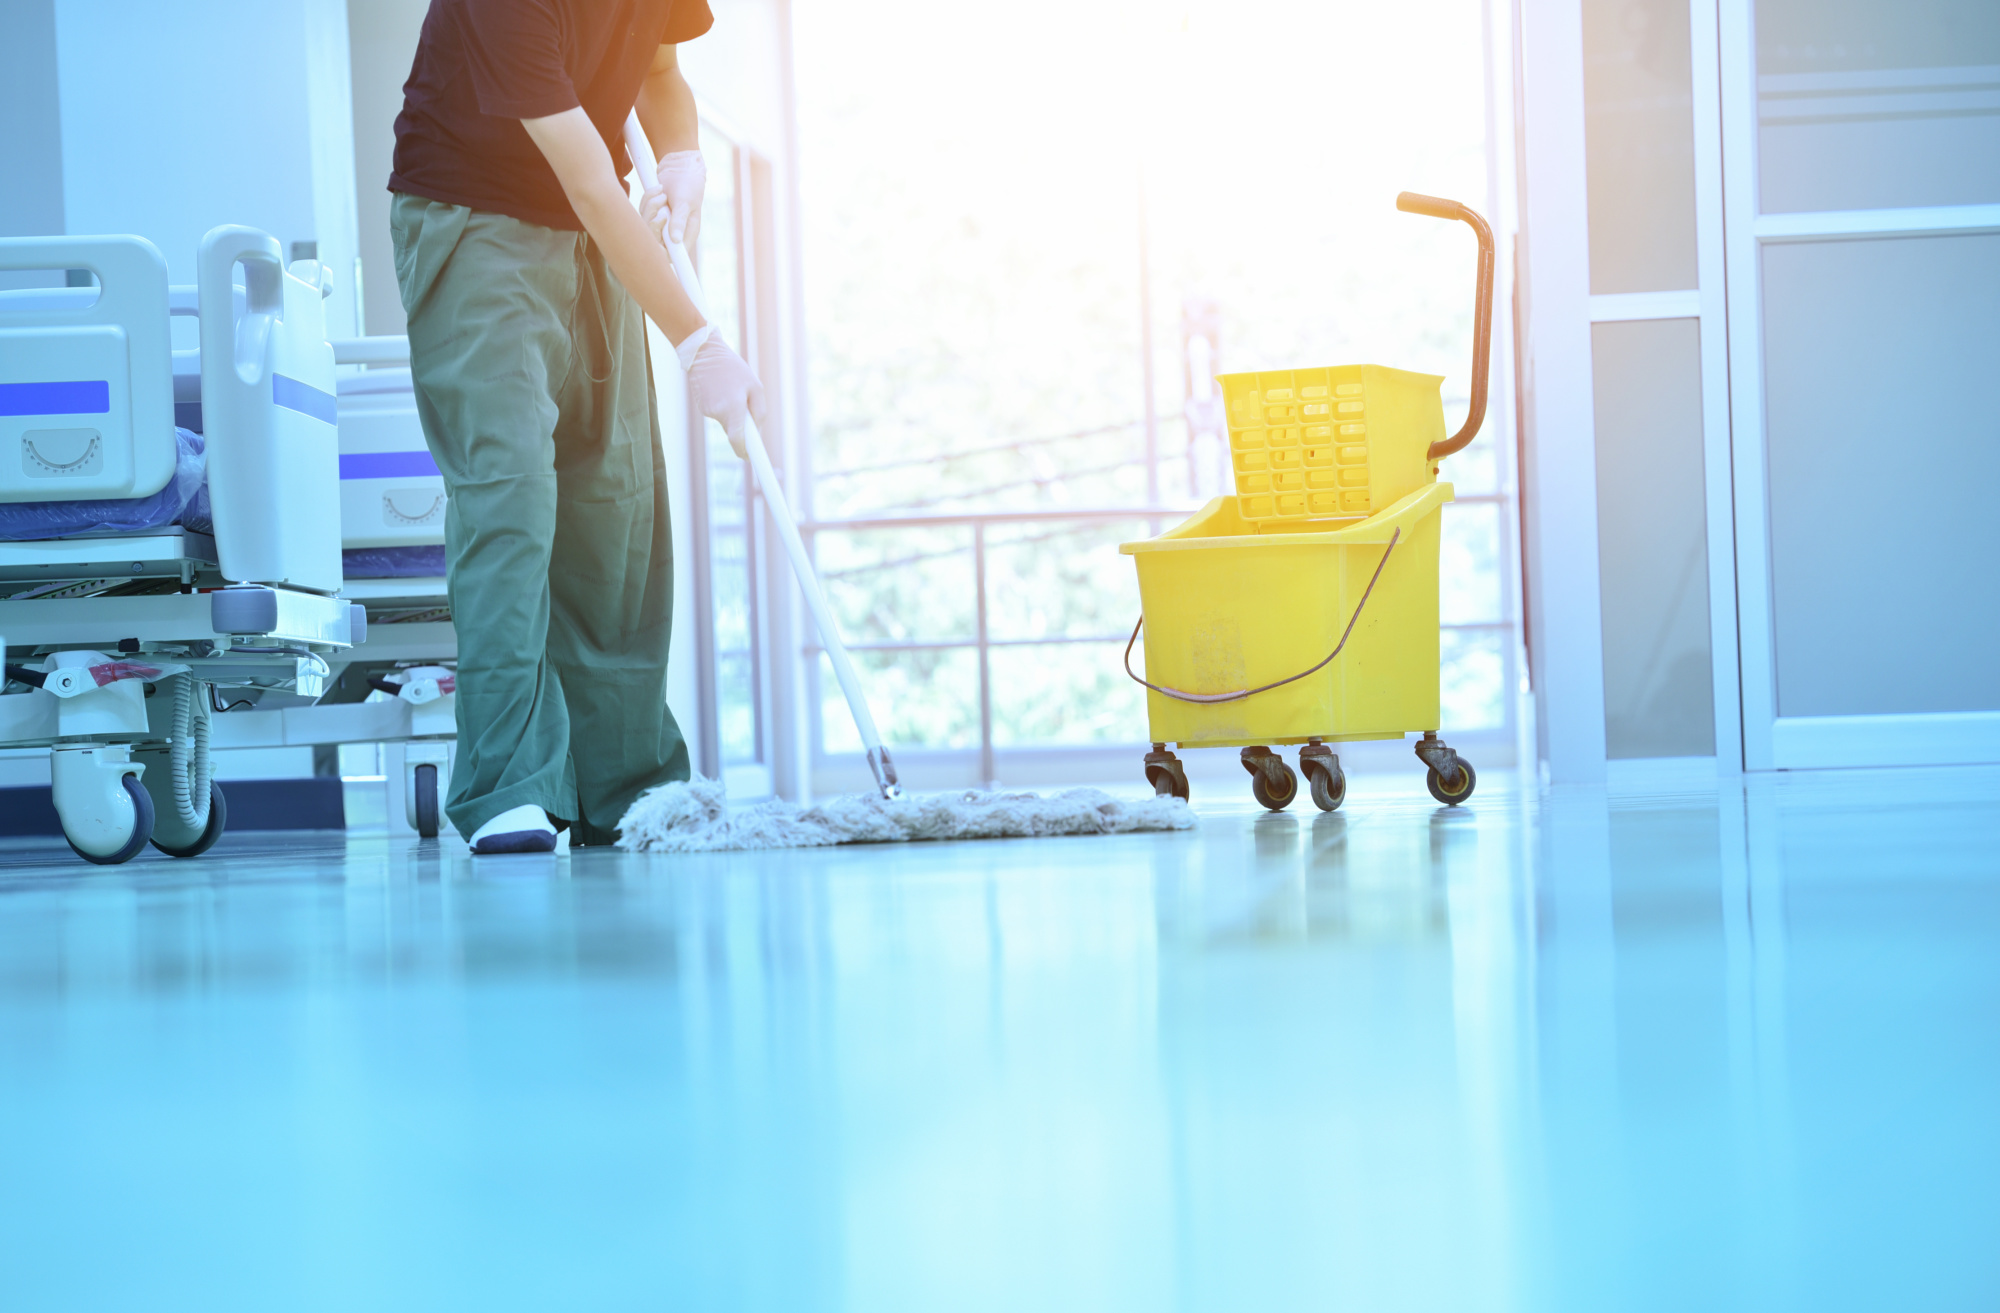 BCC appeals that Cleaning staff must be considered as 'critical or key workers'